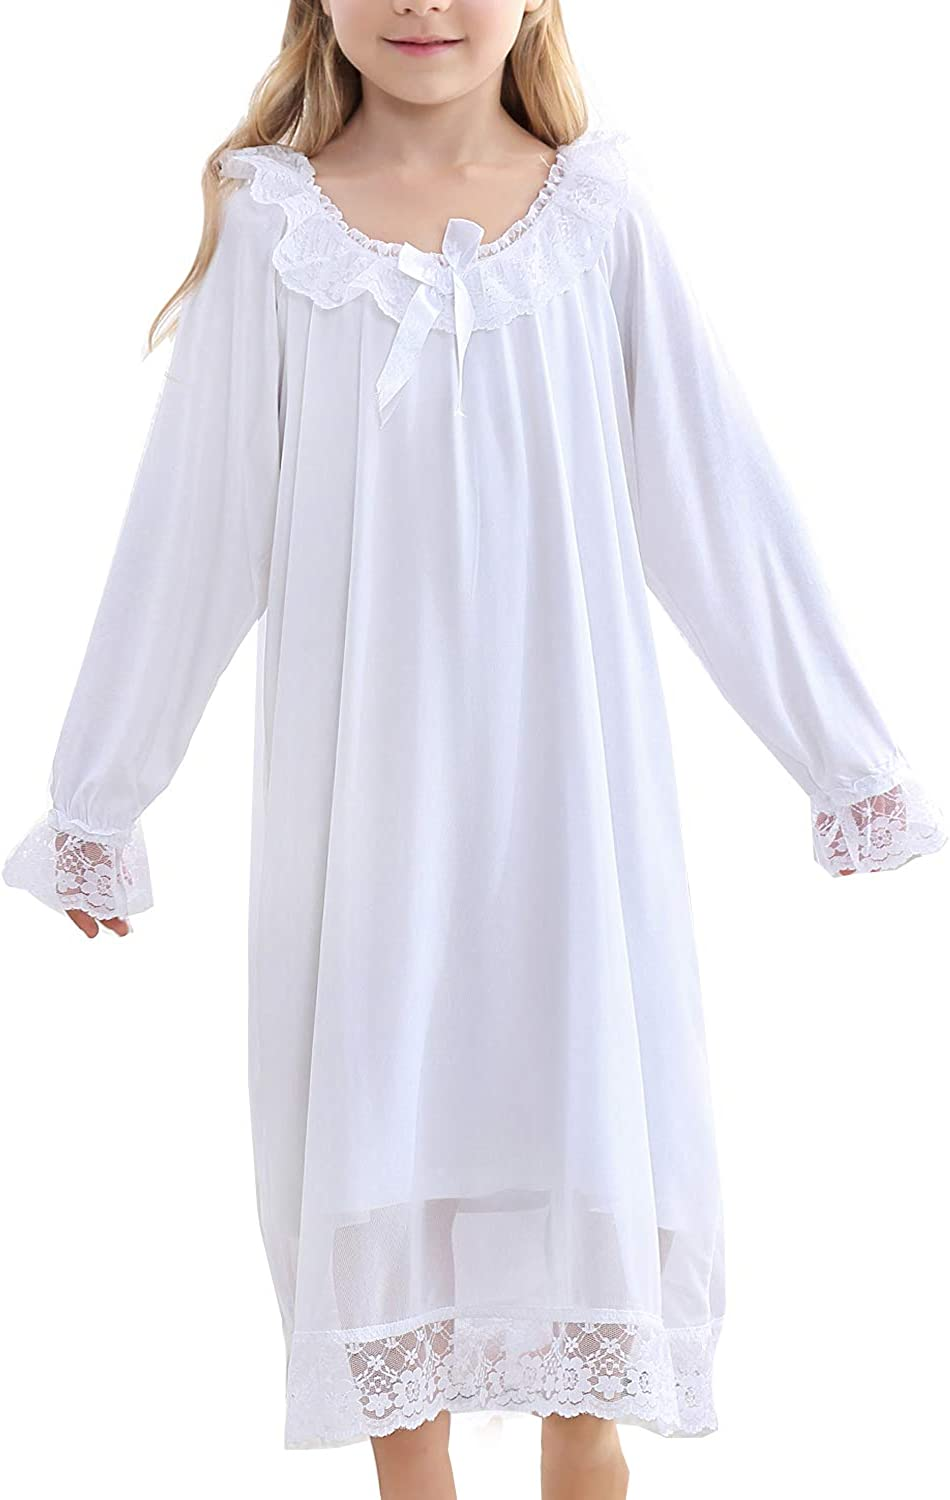 Girls' Lace Nightgowns & Bowknot Sleep Shirts Soft Cotton Sleepwear for Toddler 3-12 Years